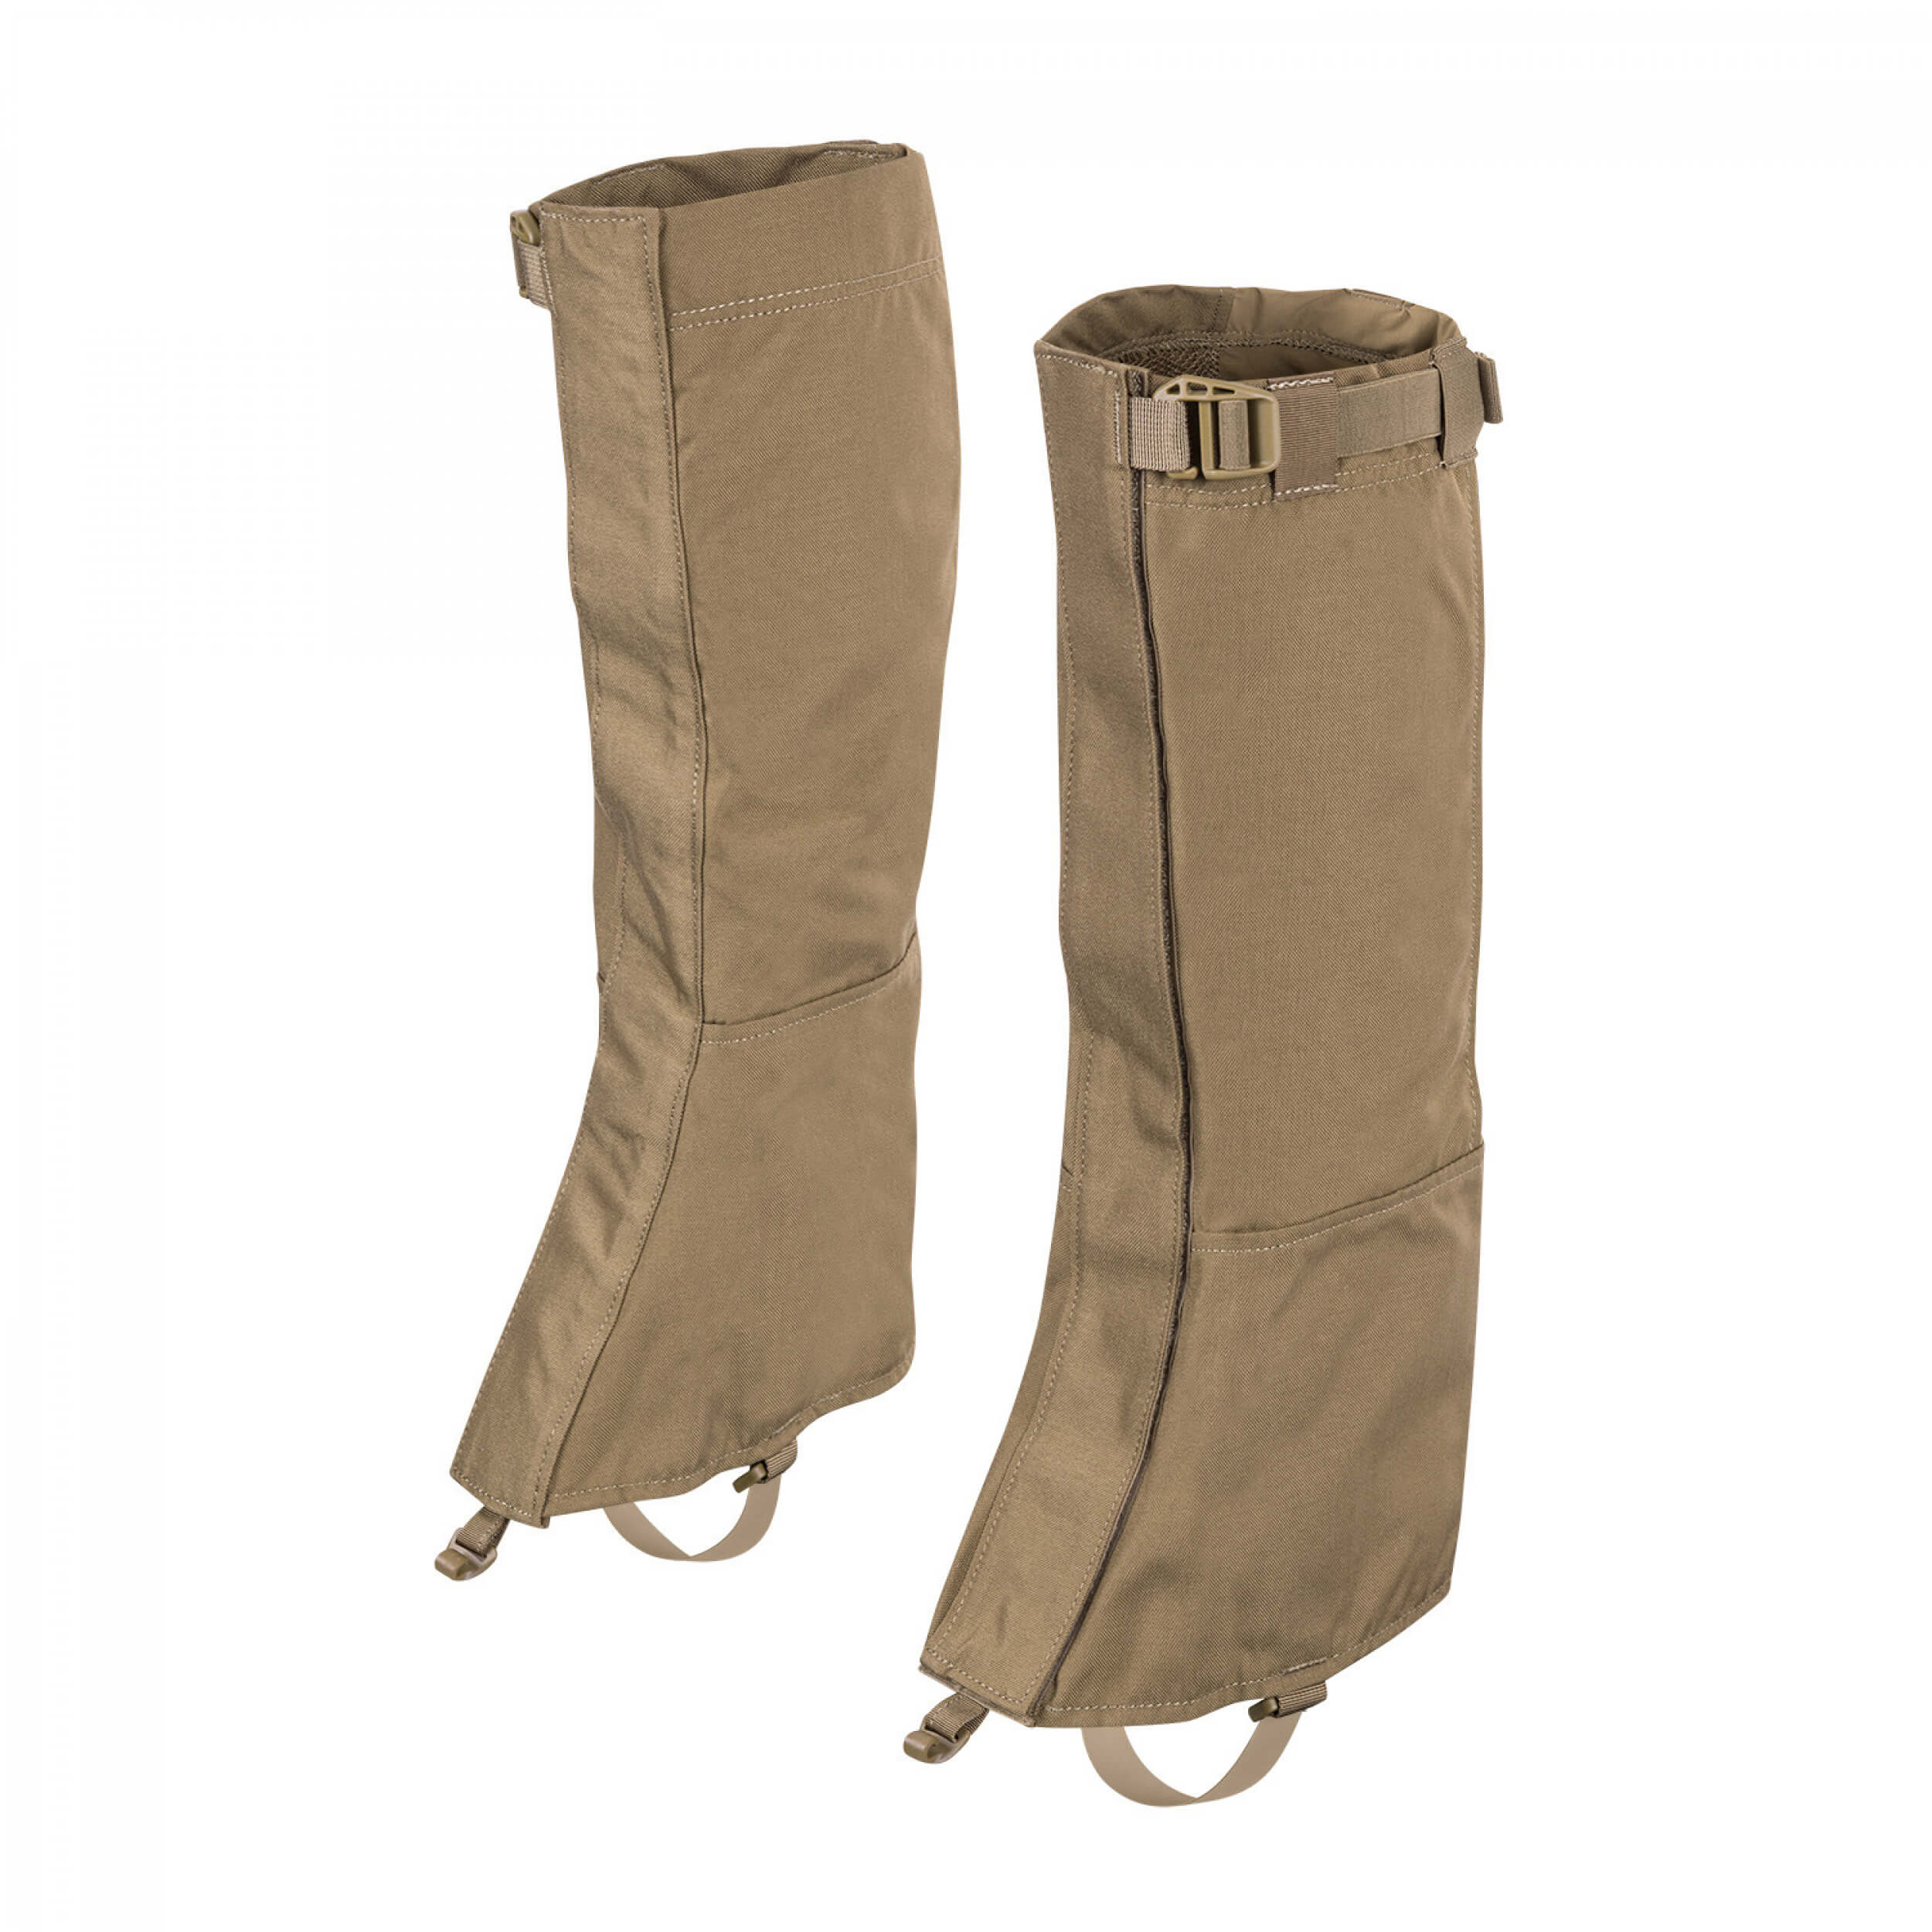 Helikon-Tex Snowfall Long Gaiters -Cordura- Coyote